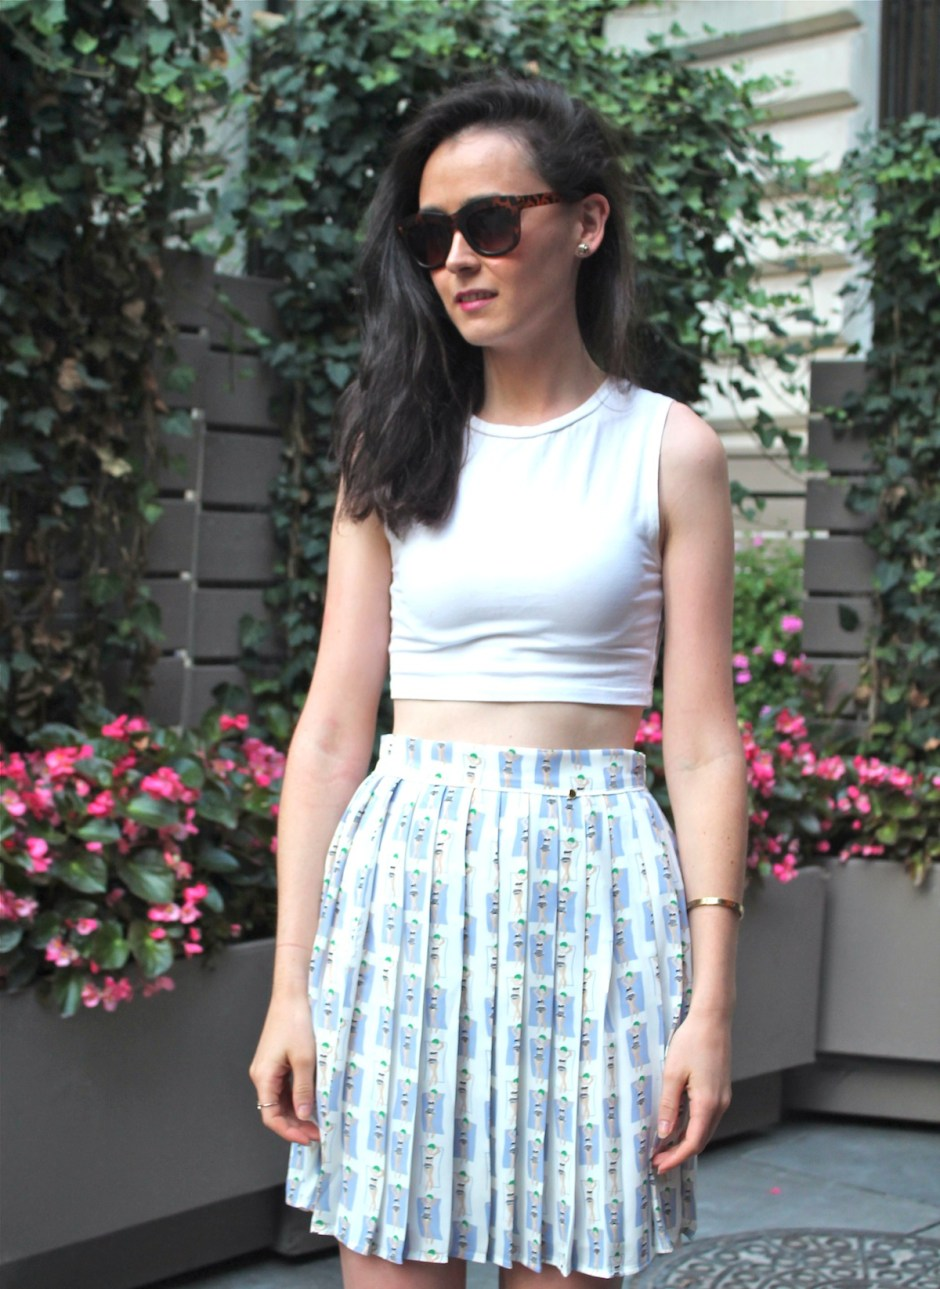 irish fashion: pleated skirt